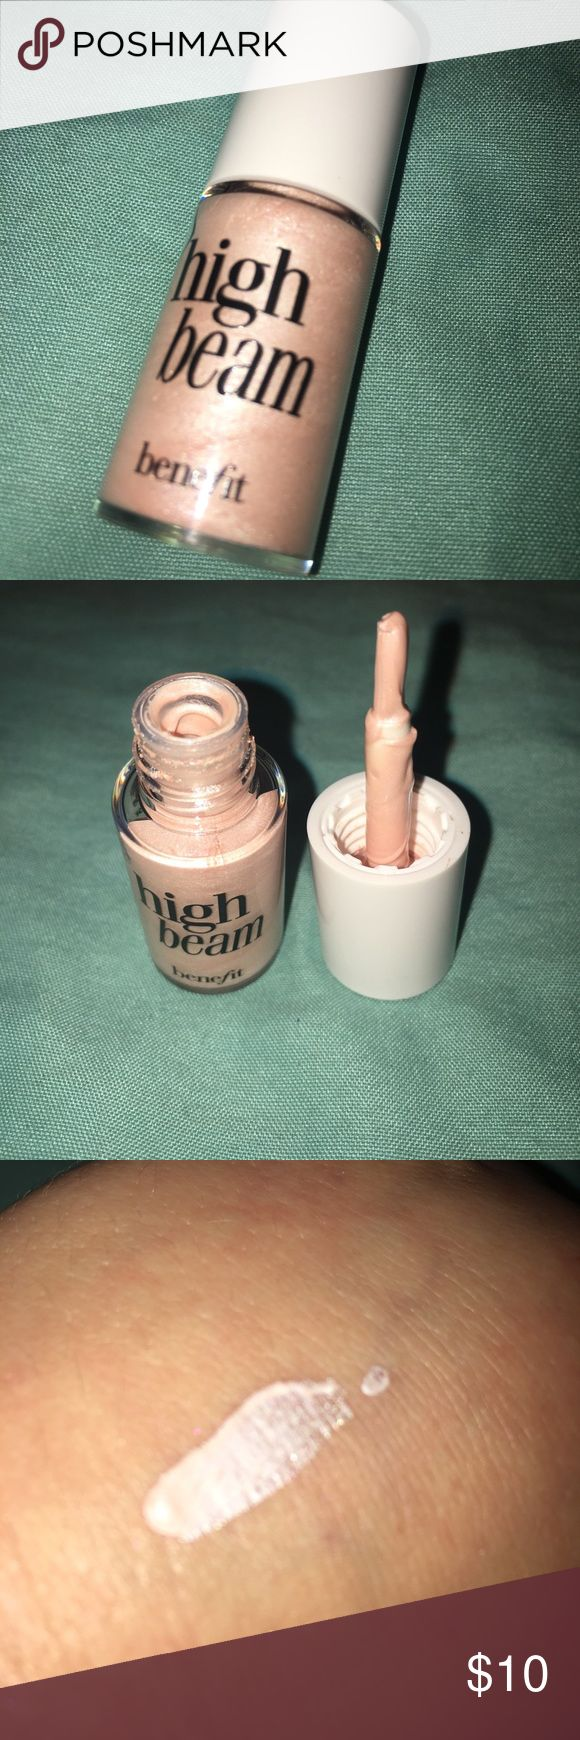 Benefit high beam Benefit slightly pink complexion highlighter 75% left bought a big one so don't need two Benefit Makeup Luminizer